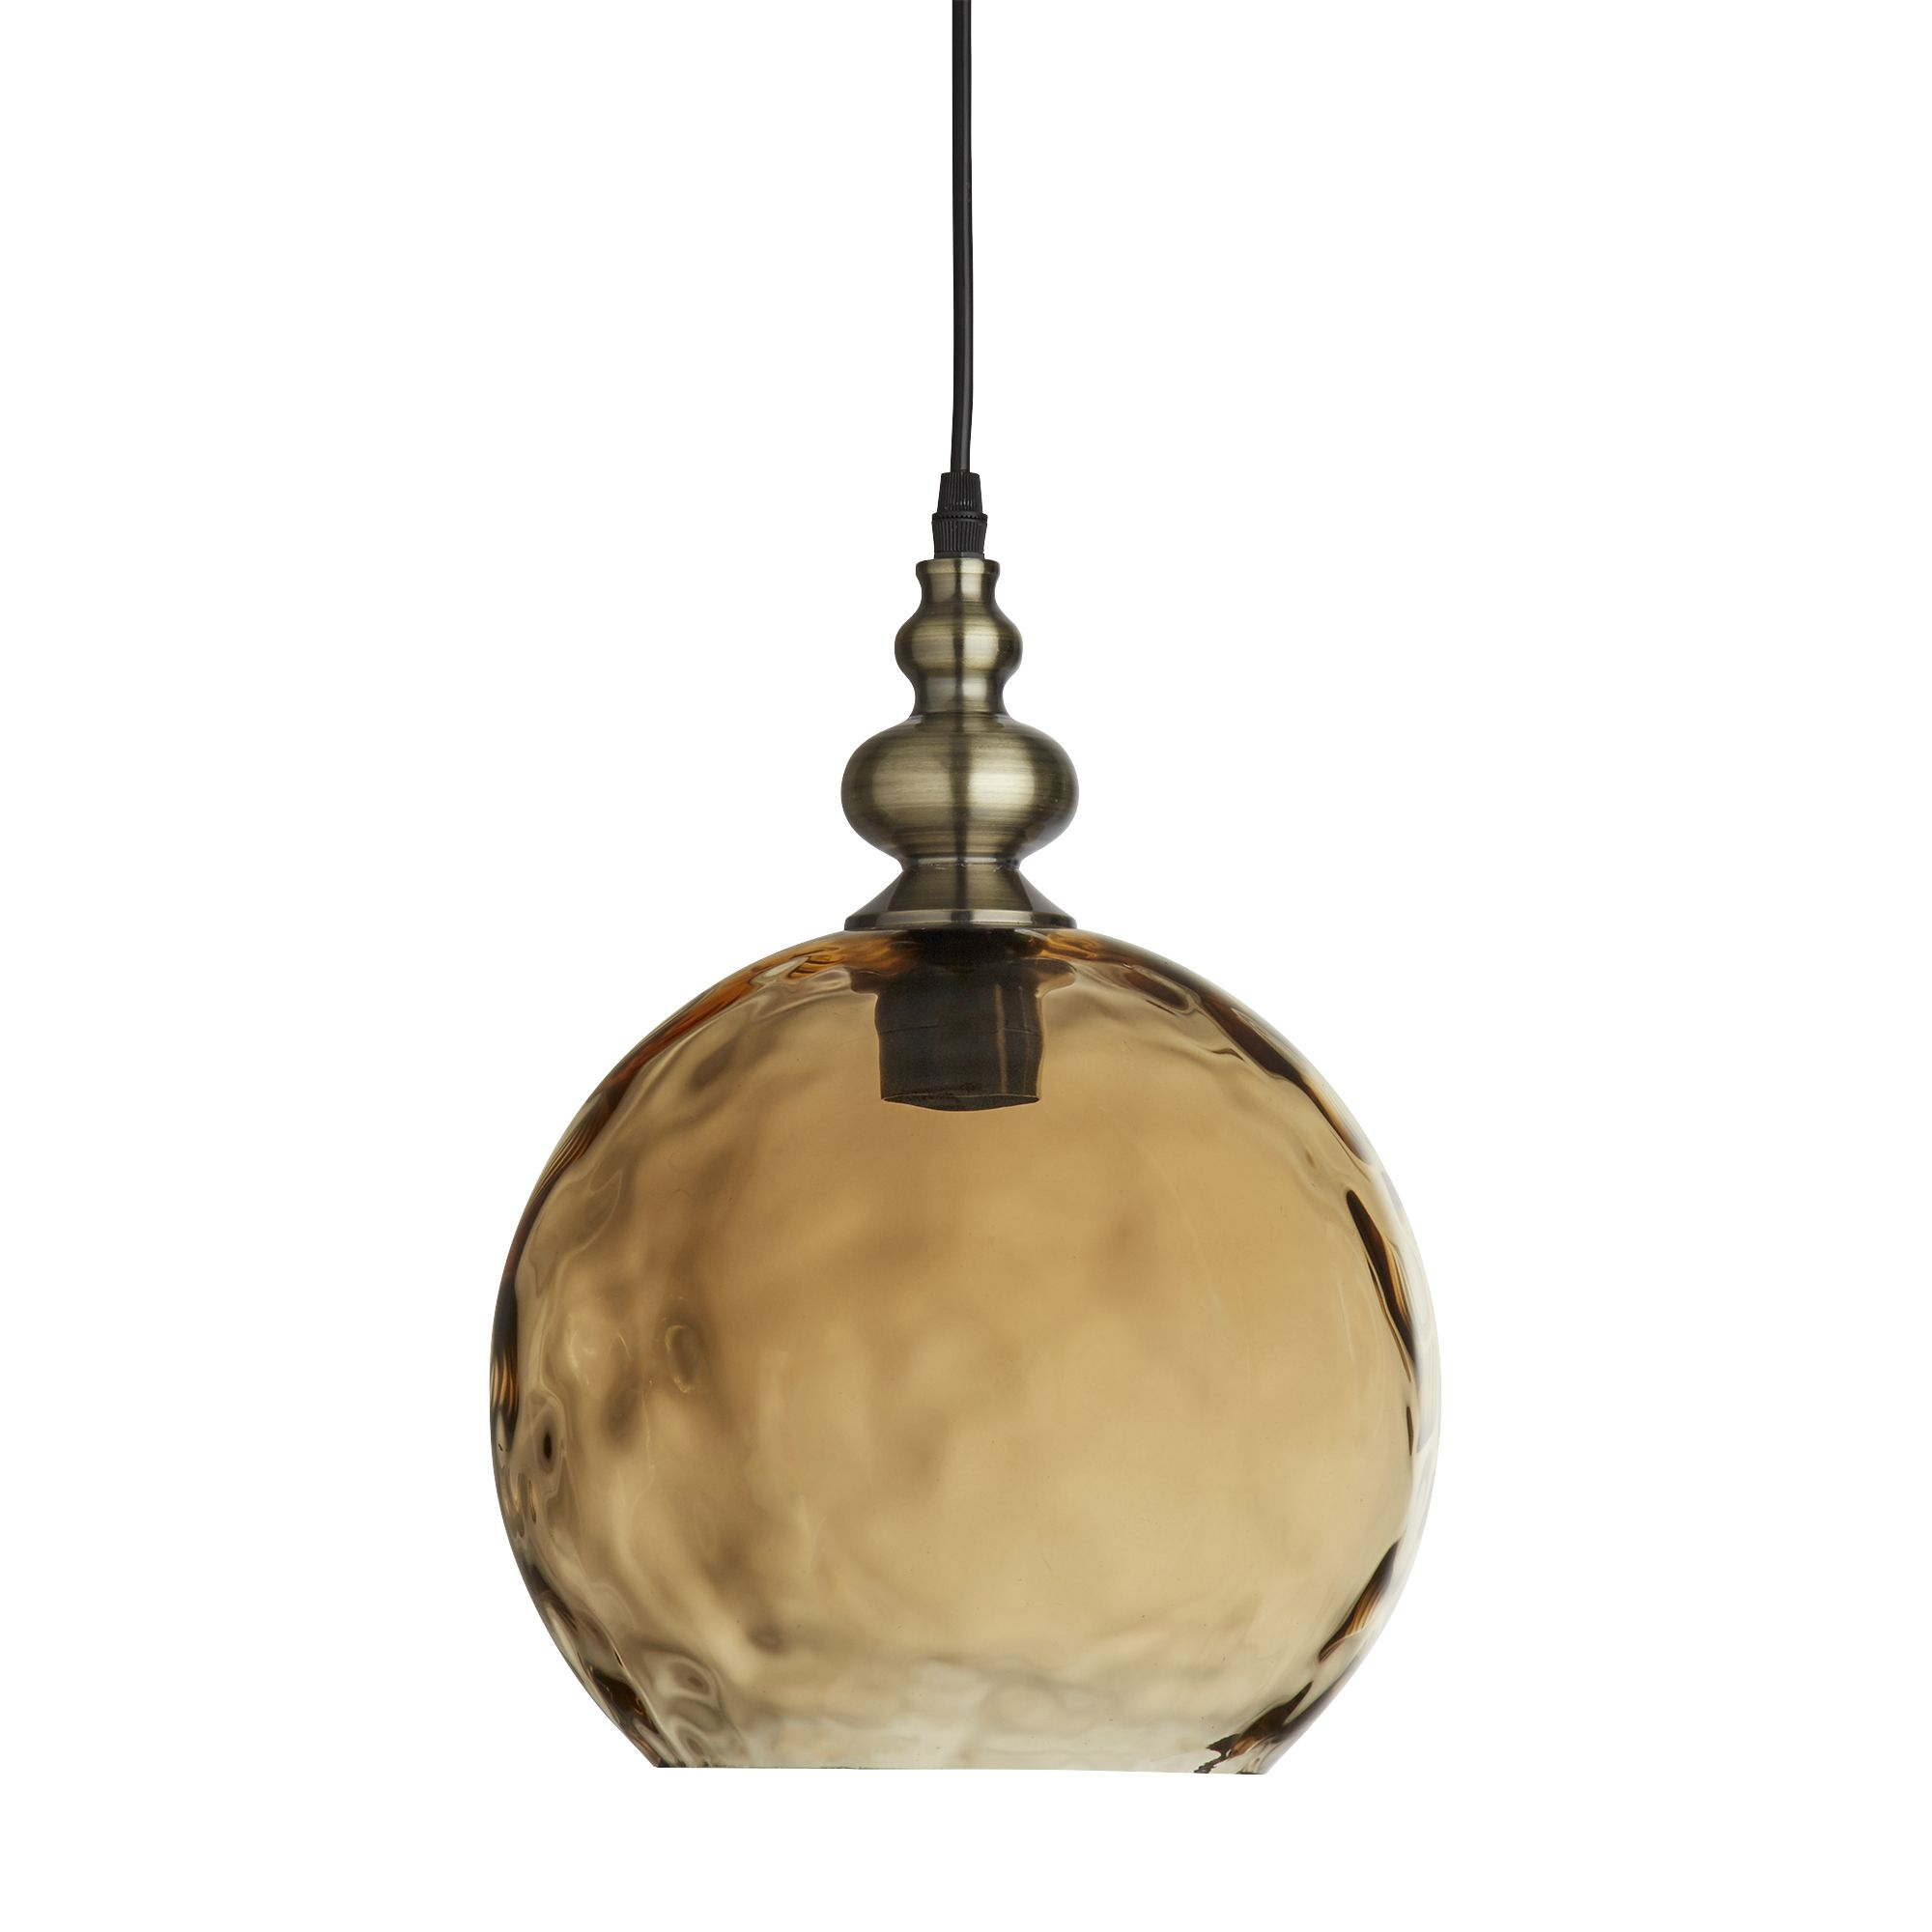 Indiana Antique Brass Globe Pendant Light With Dimpled Glass Shade